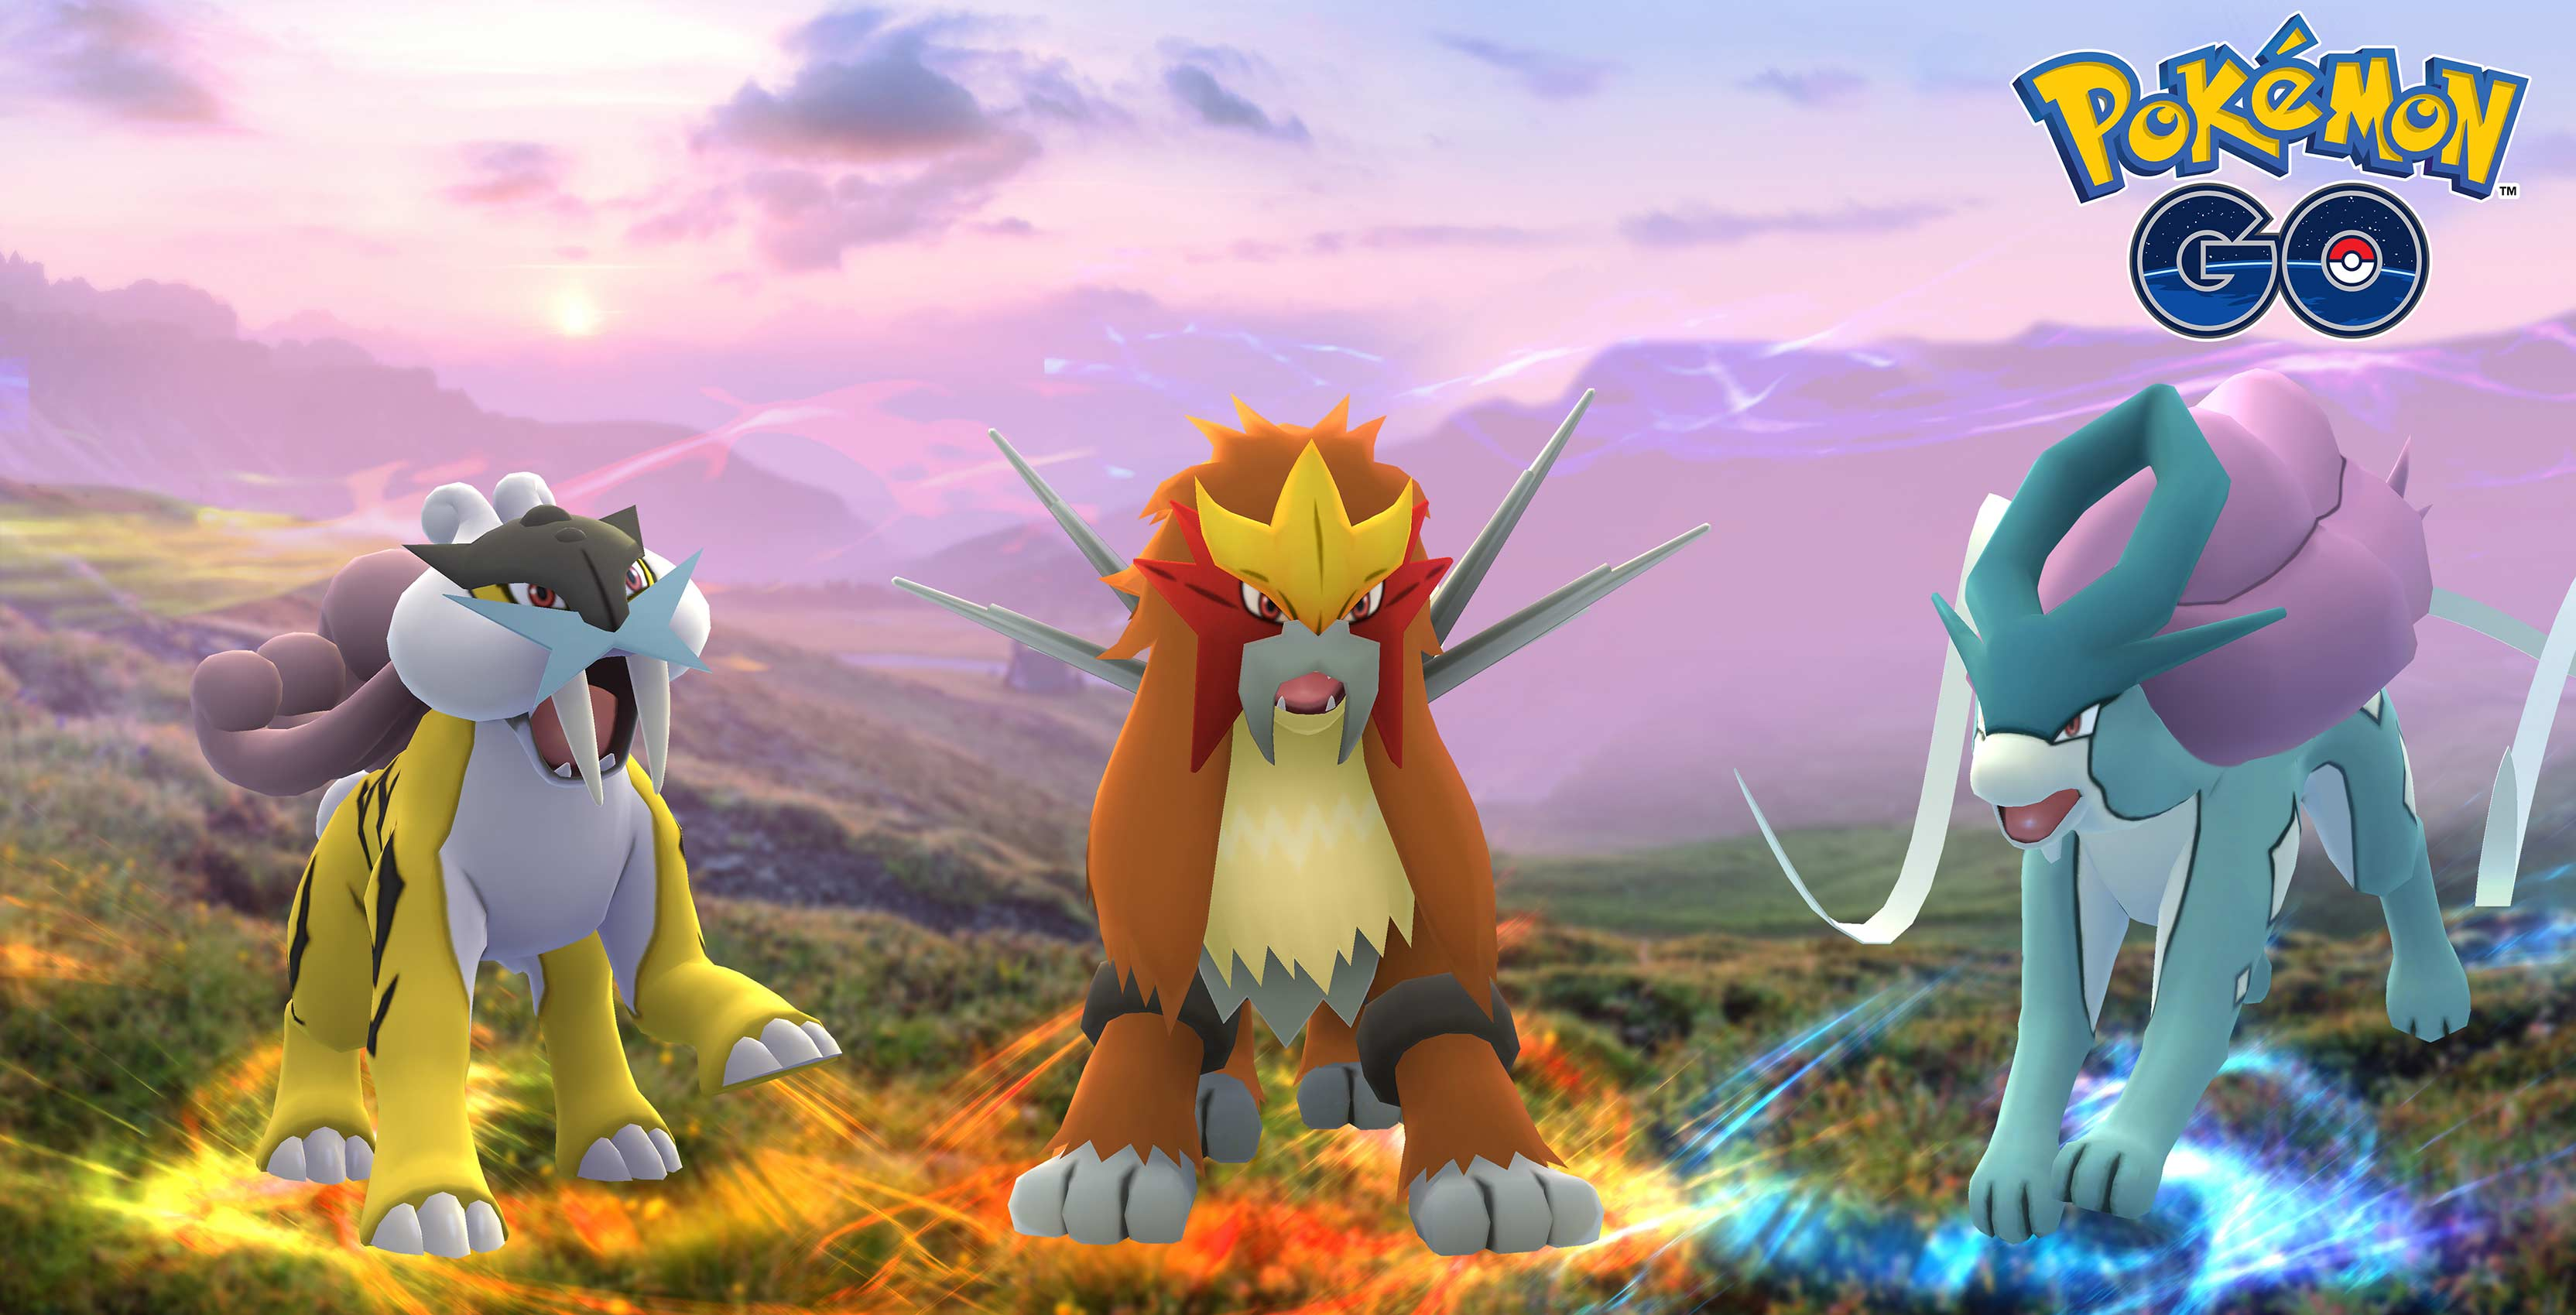 Pokemon Legendary, Entei, Raikou and Suicune